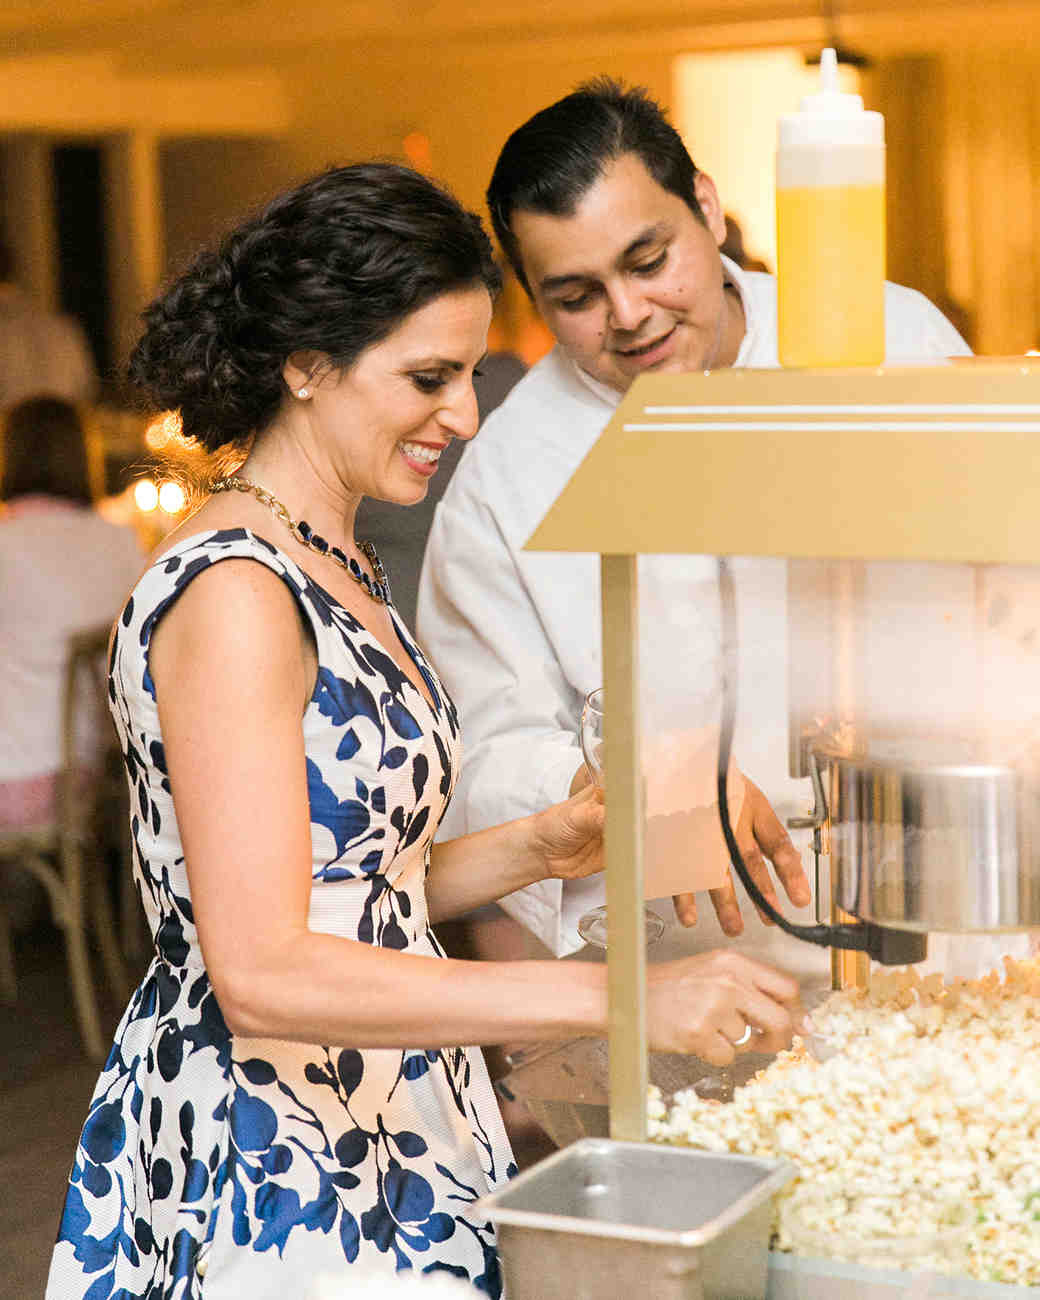 cassandra jason wedding guests with popcorn